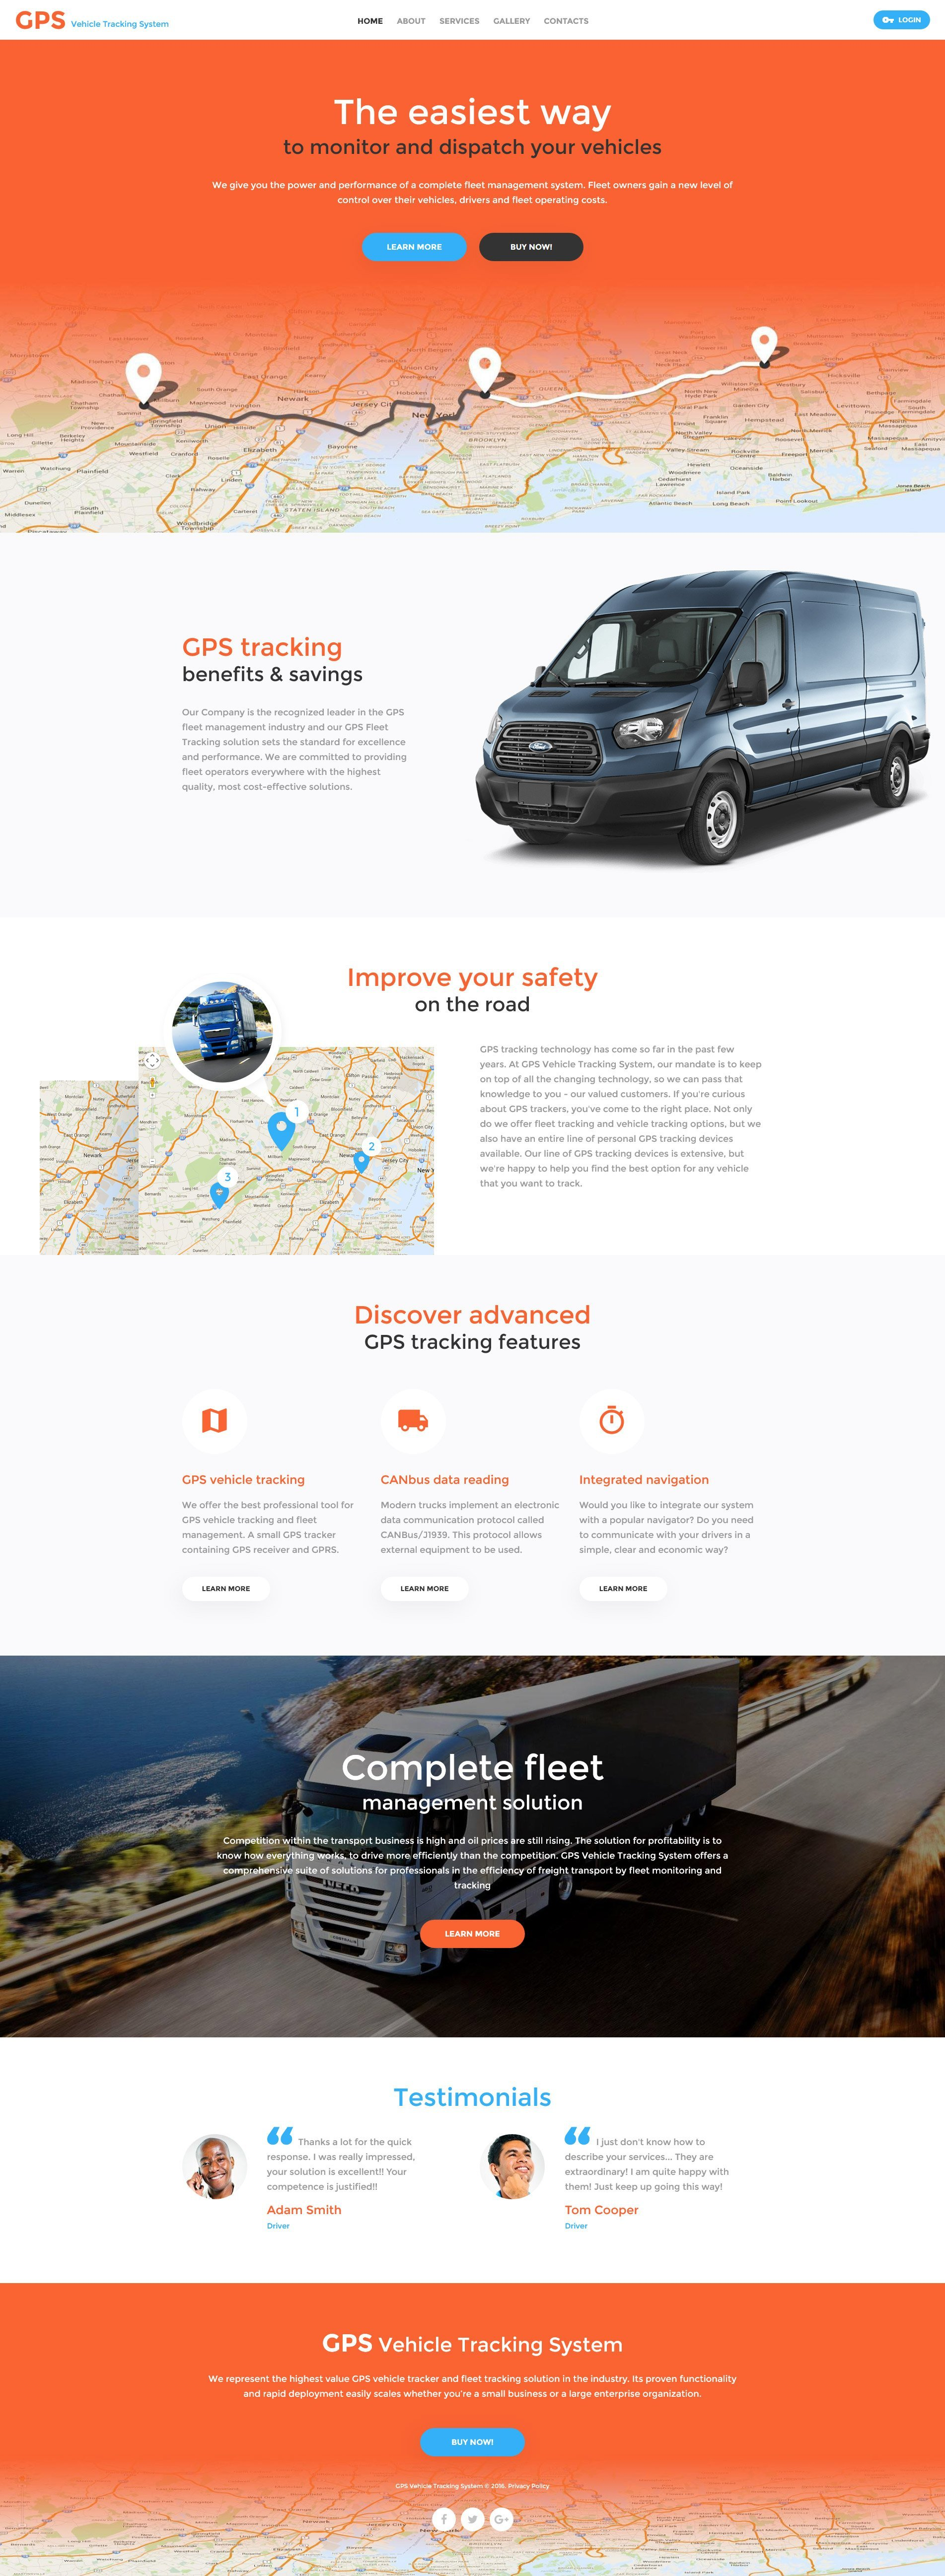 GPS Vehicle Tracking System Website Template - screenshot